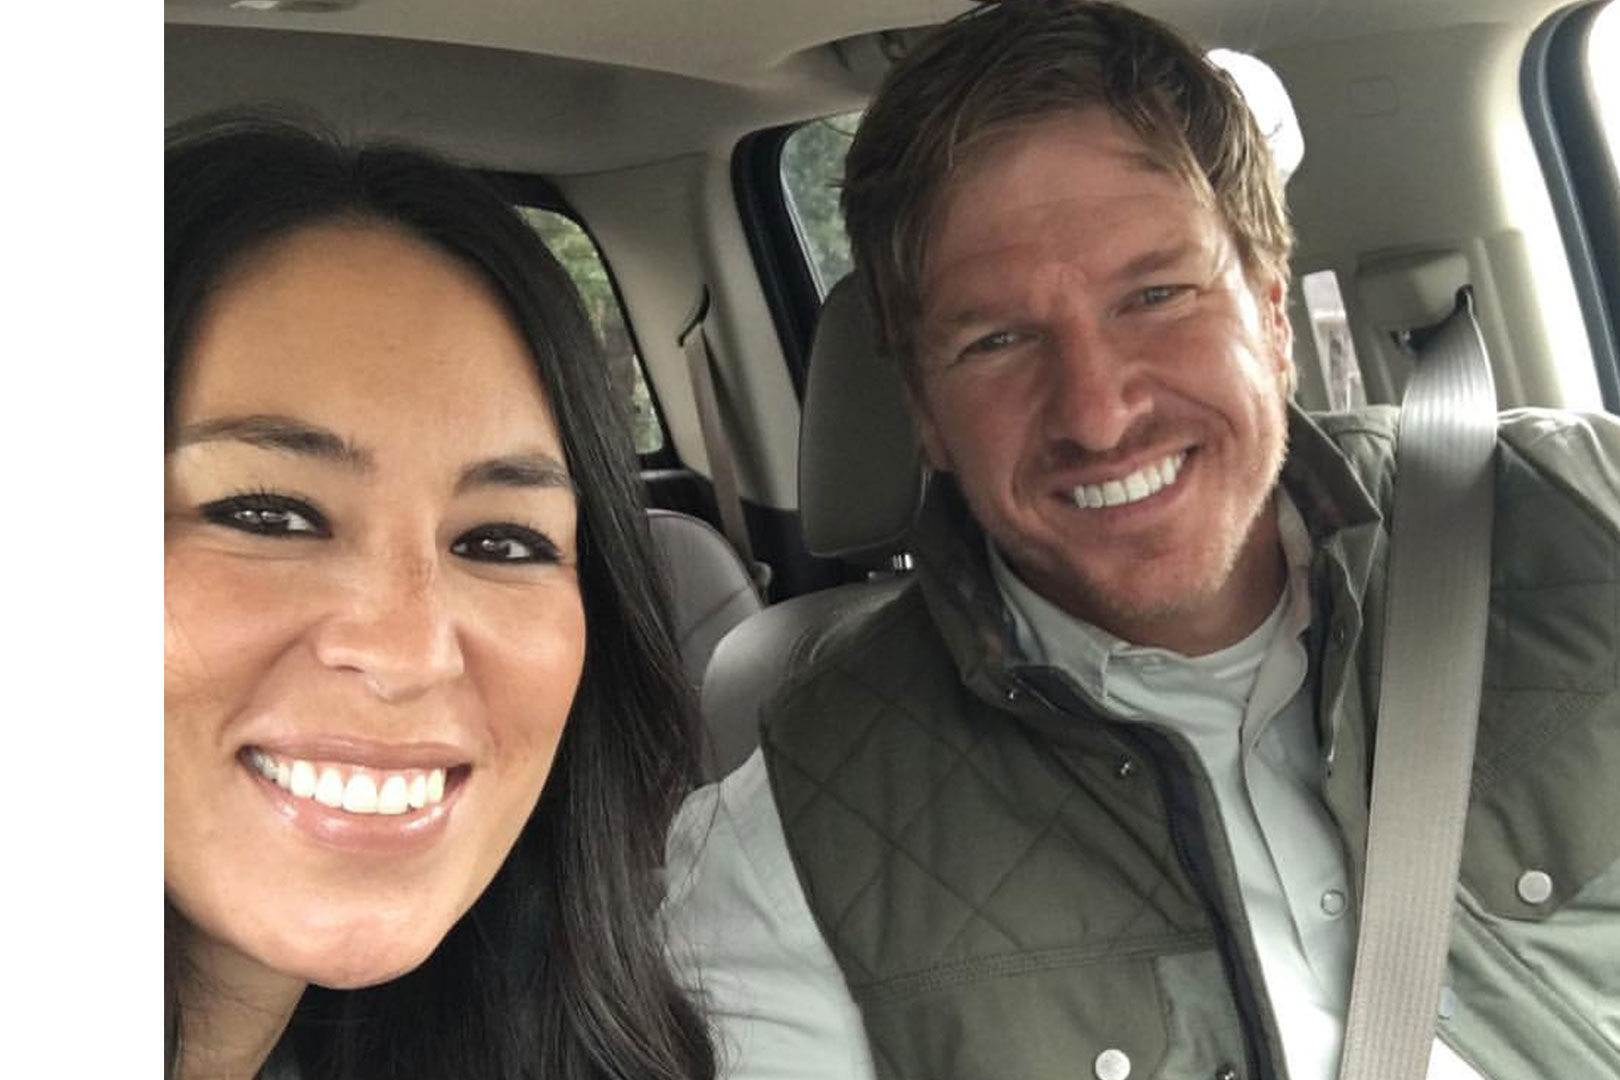 Joanna Gaines Reveals the Two Home Design Essentials She Always Keeps in Her Purse